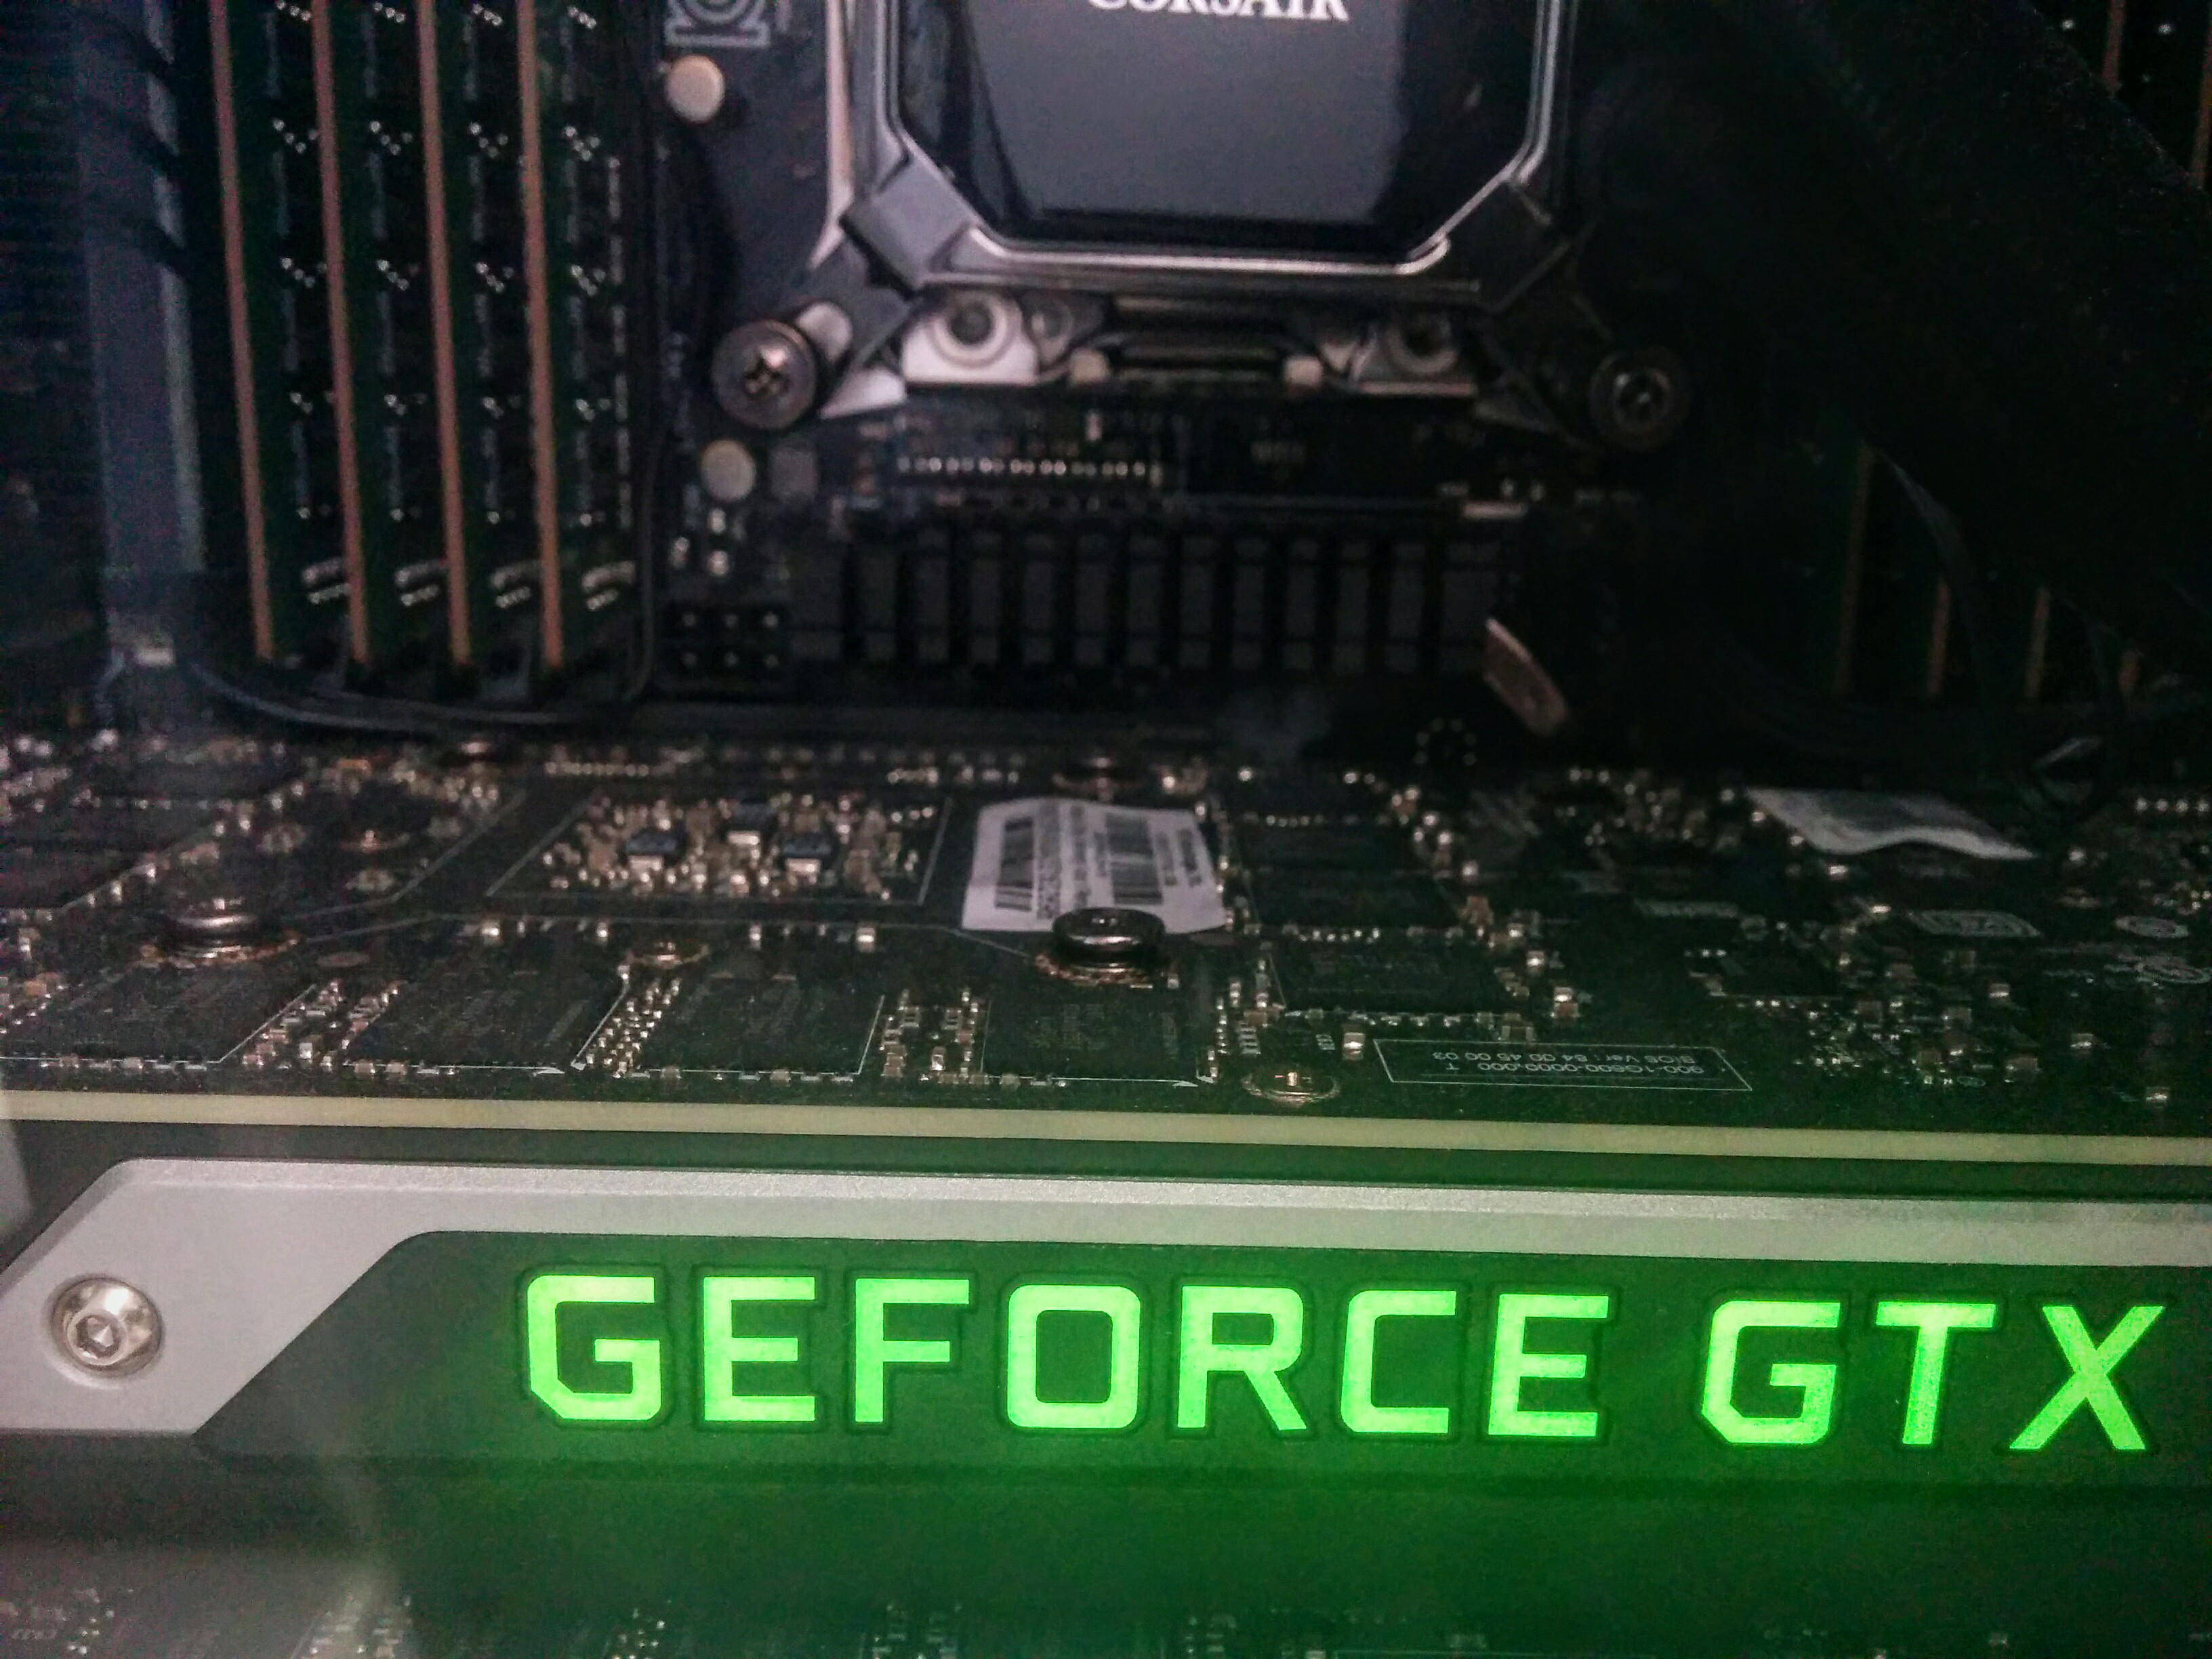 GPU circuit boards